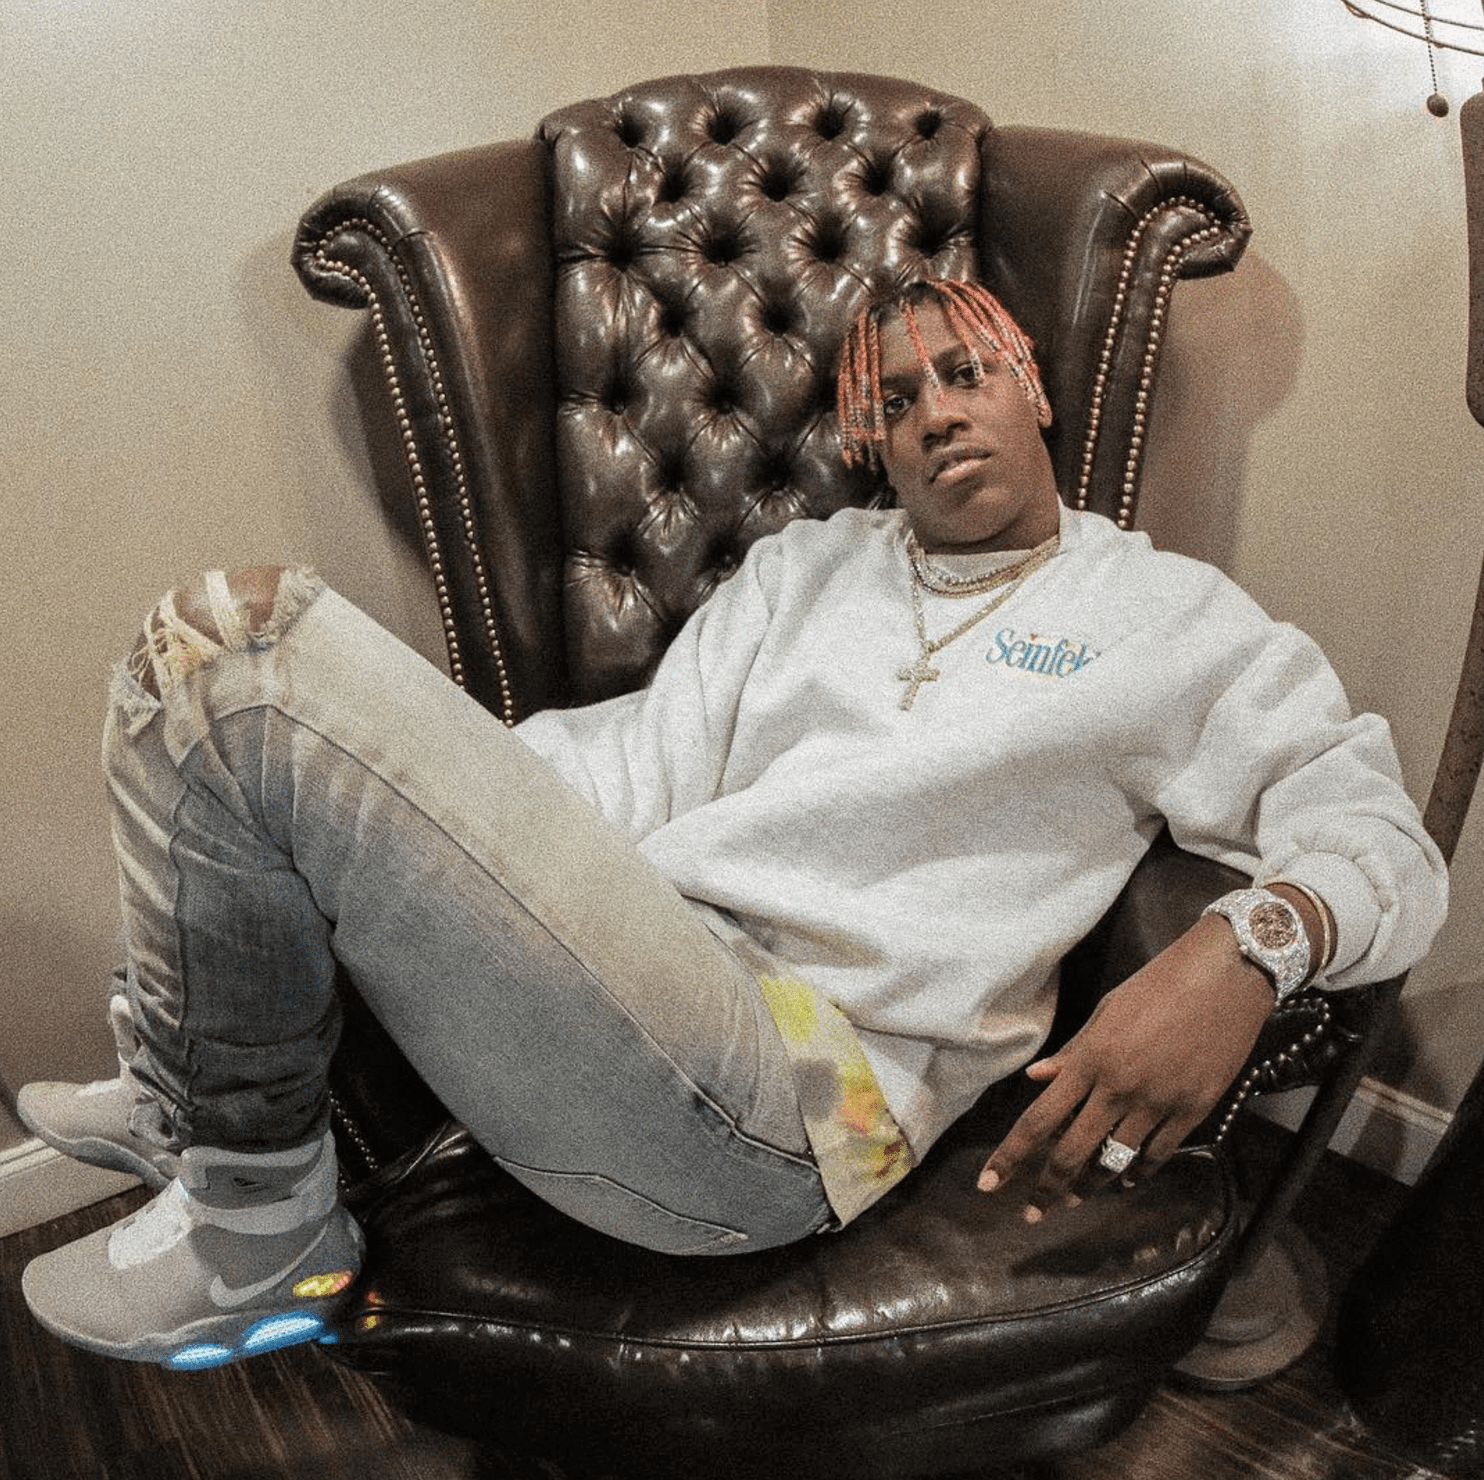 Lil Yachty in the Nike Air Mag